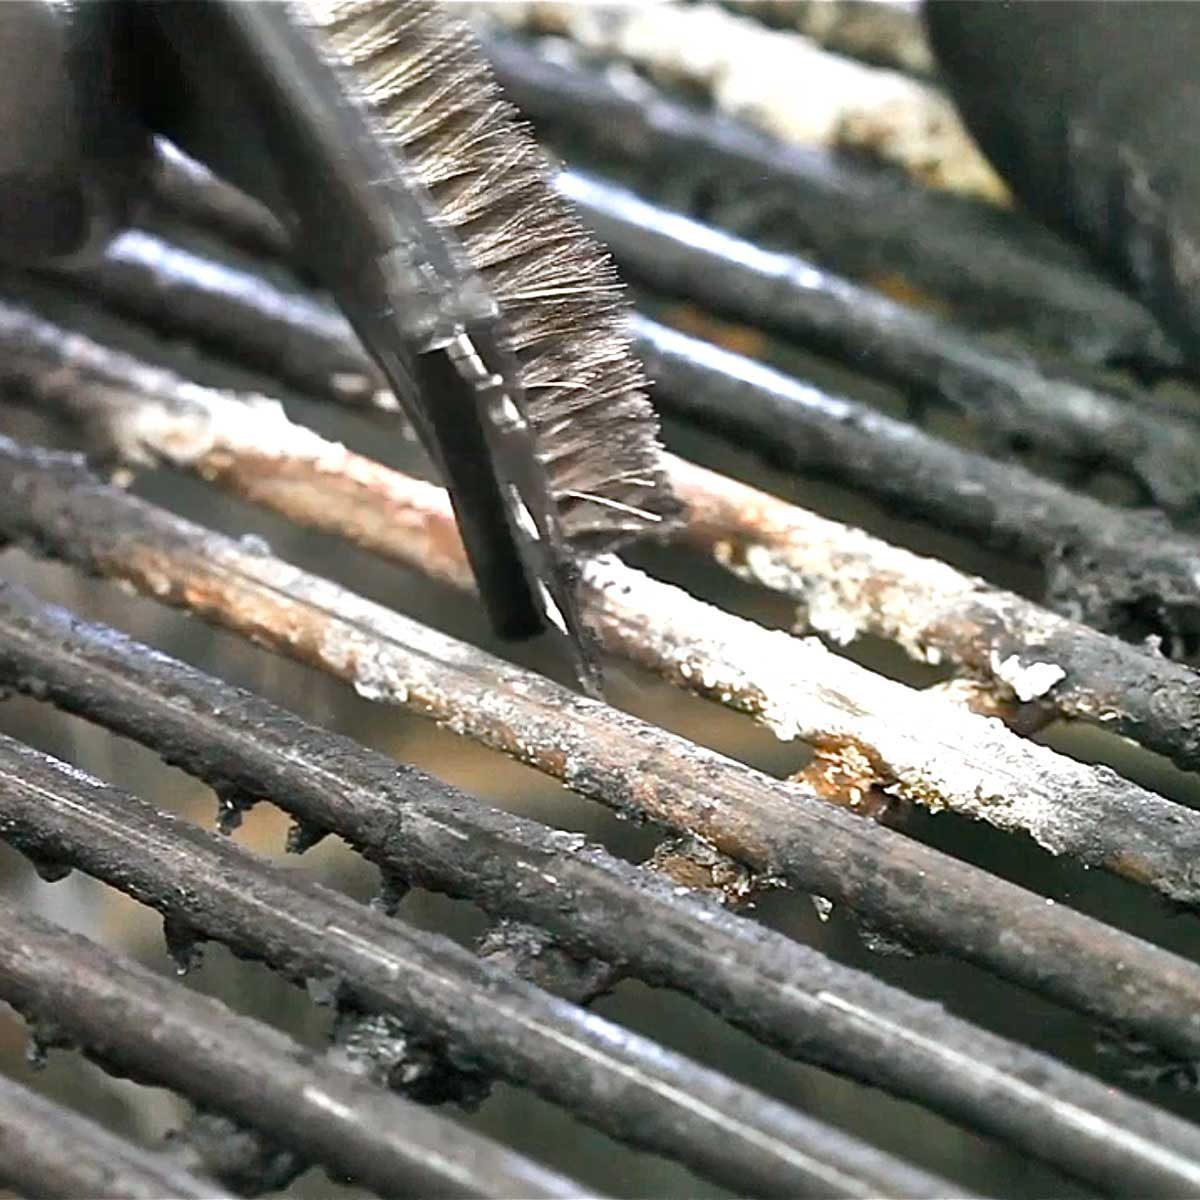 Preheat and Clean the Grill